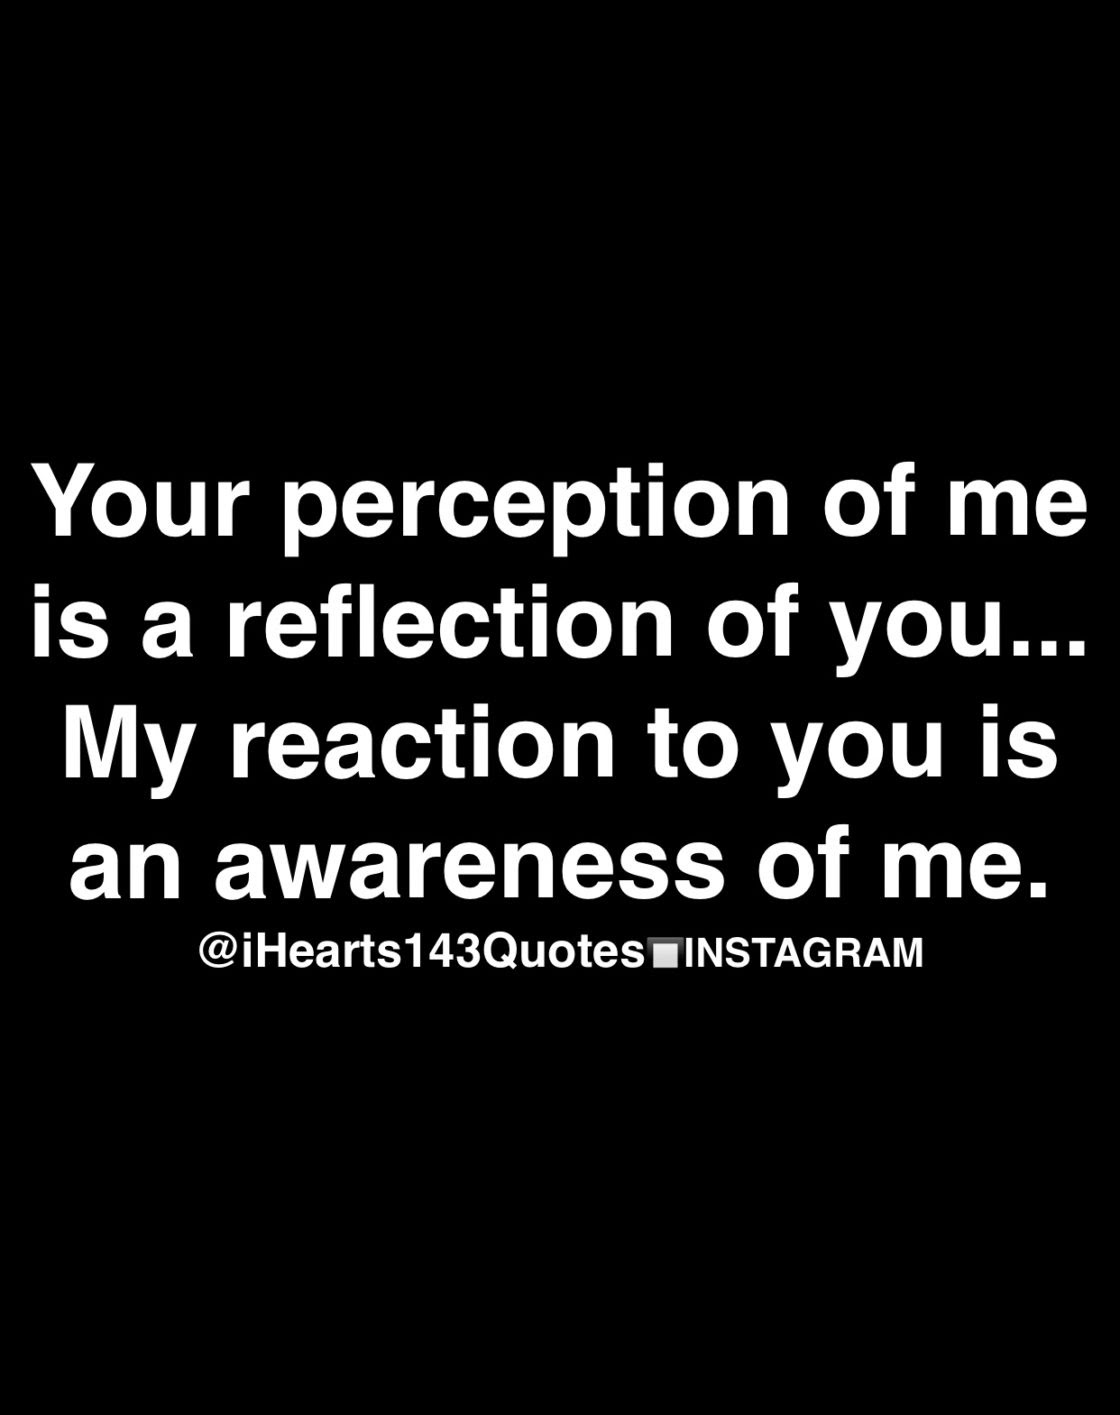 Relationship Articles Page 365 Ihearts143quotes